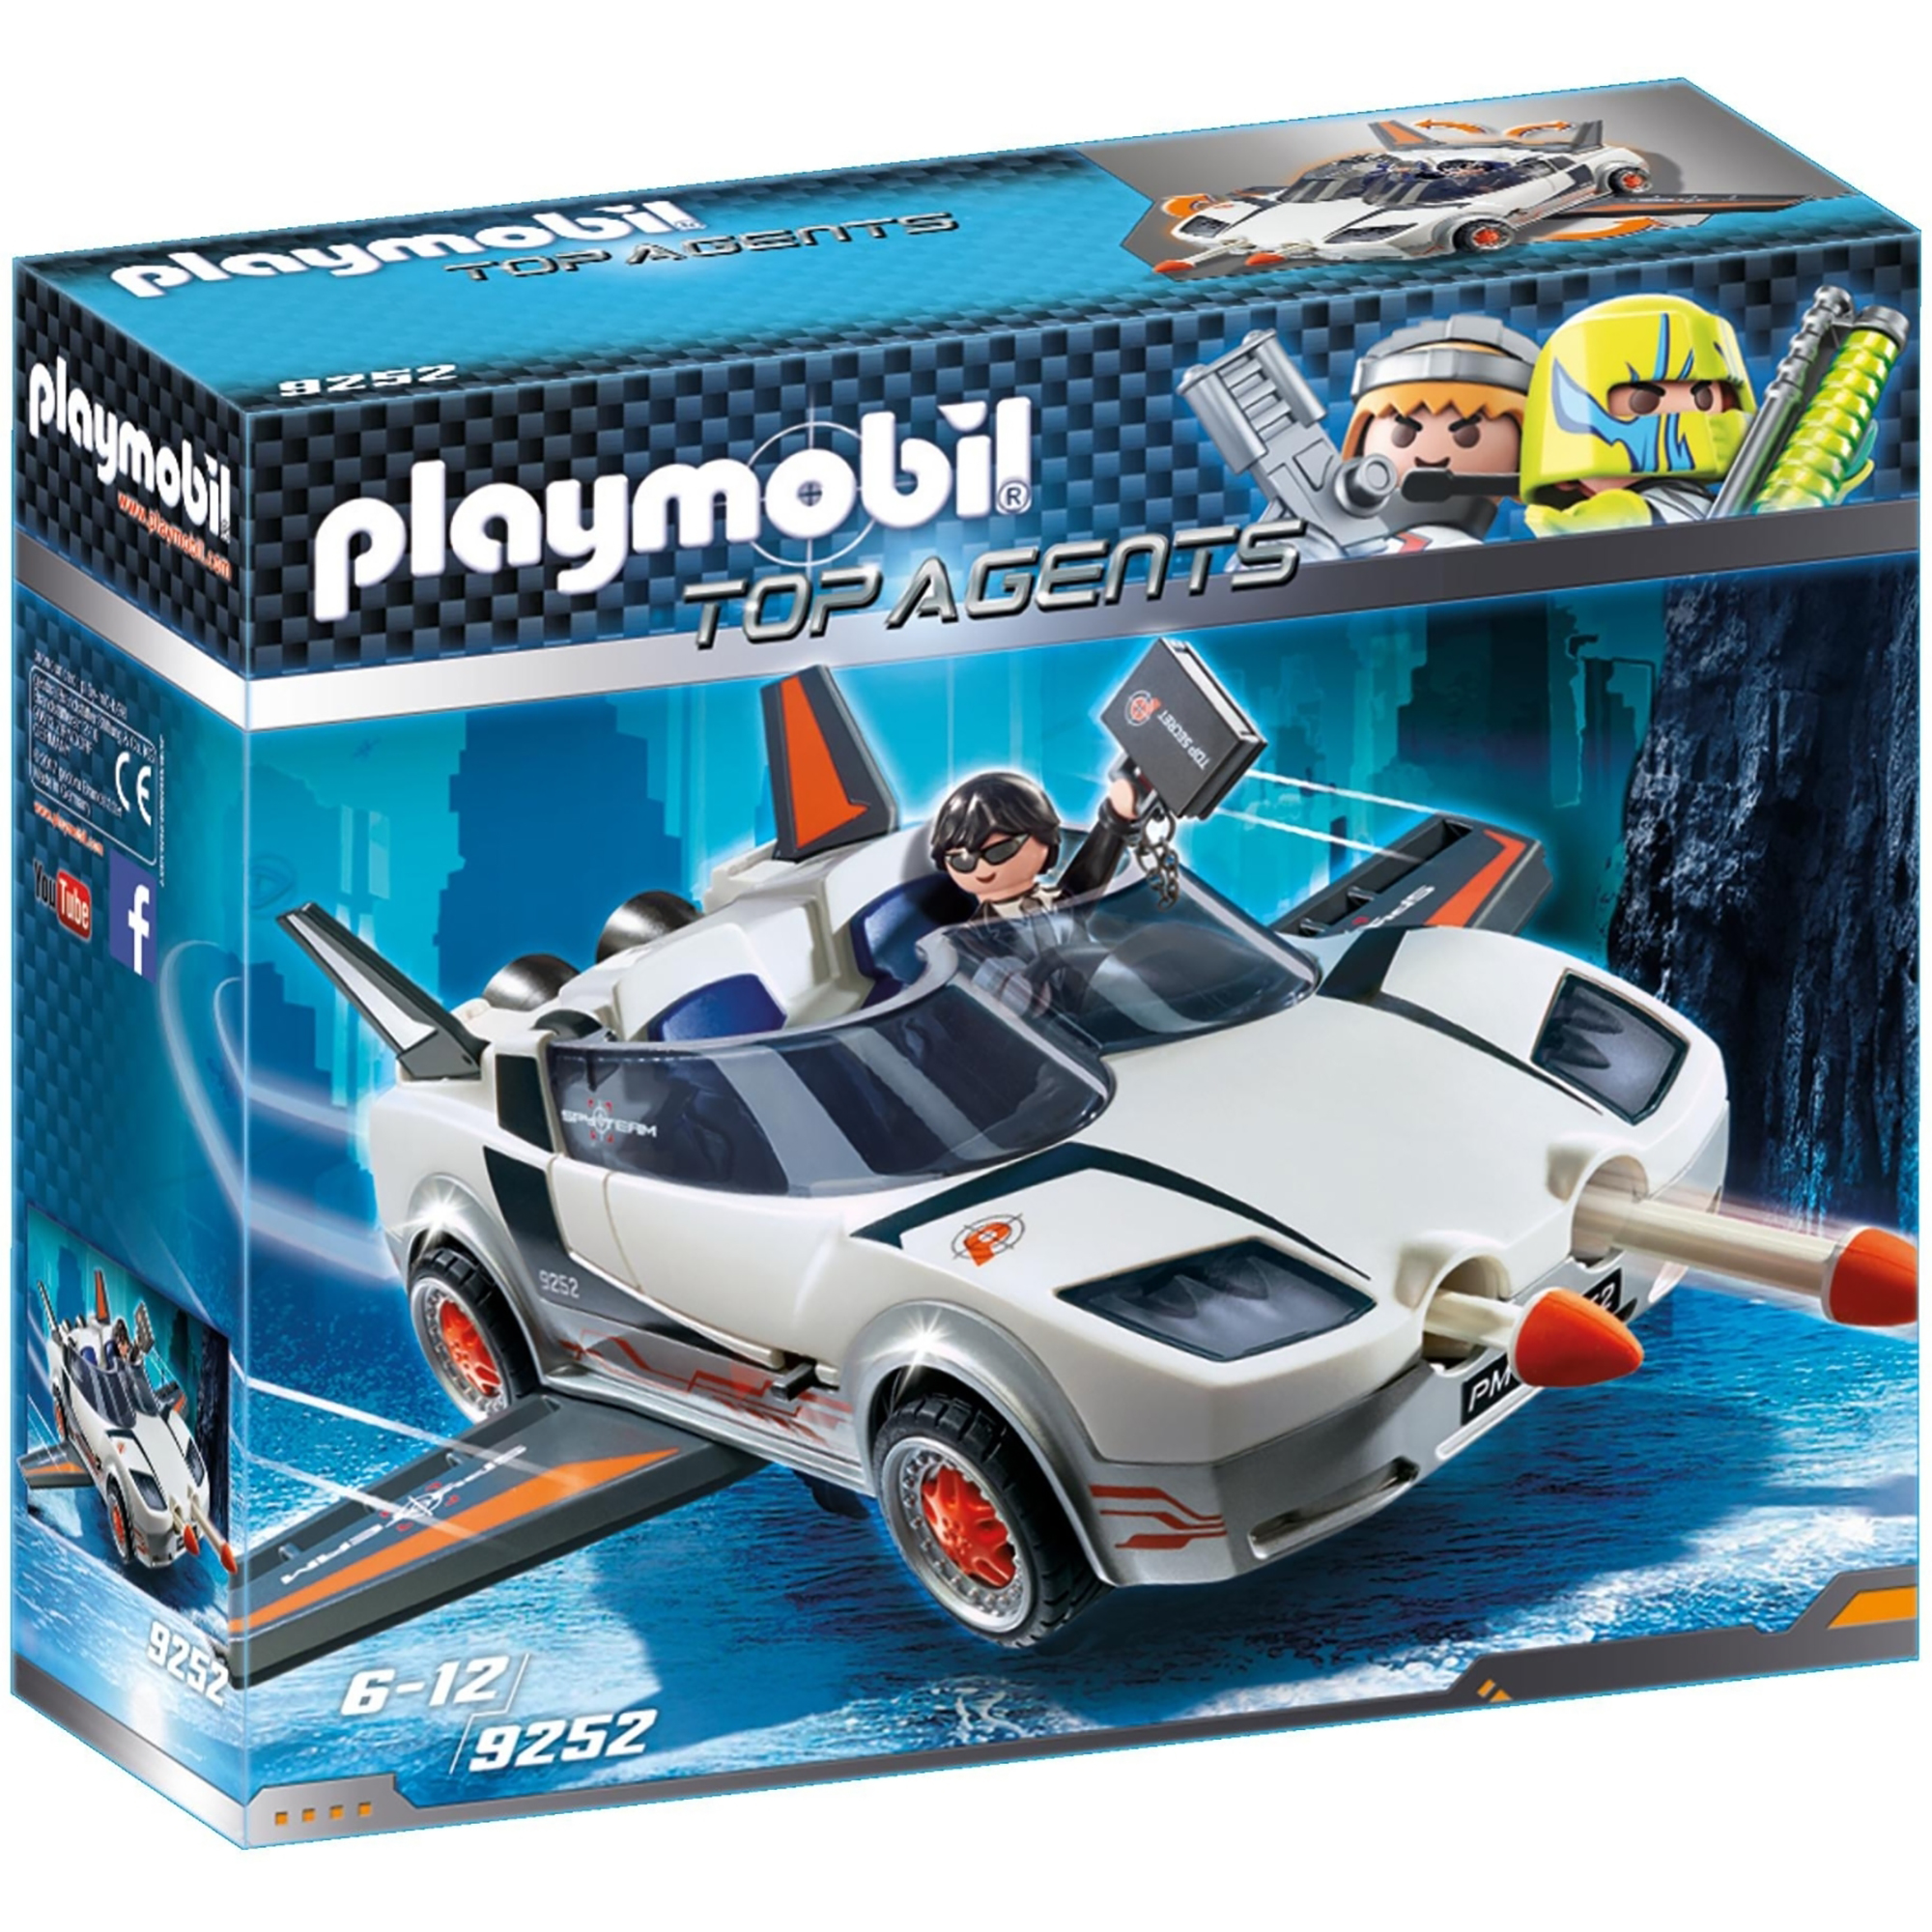 Playmobil Top Agents Agent P With Firing Weapons 9252